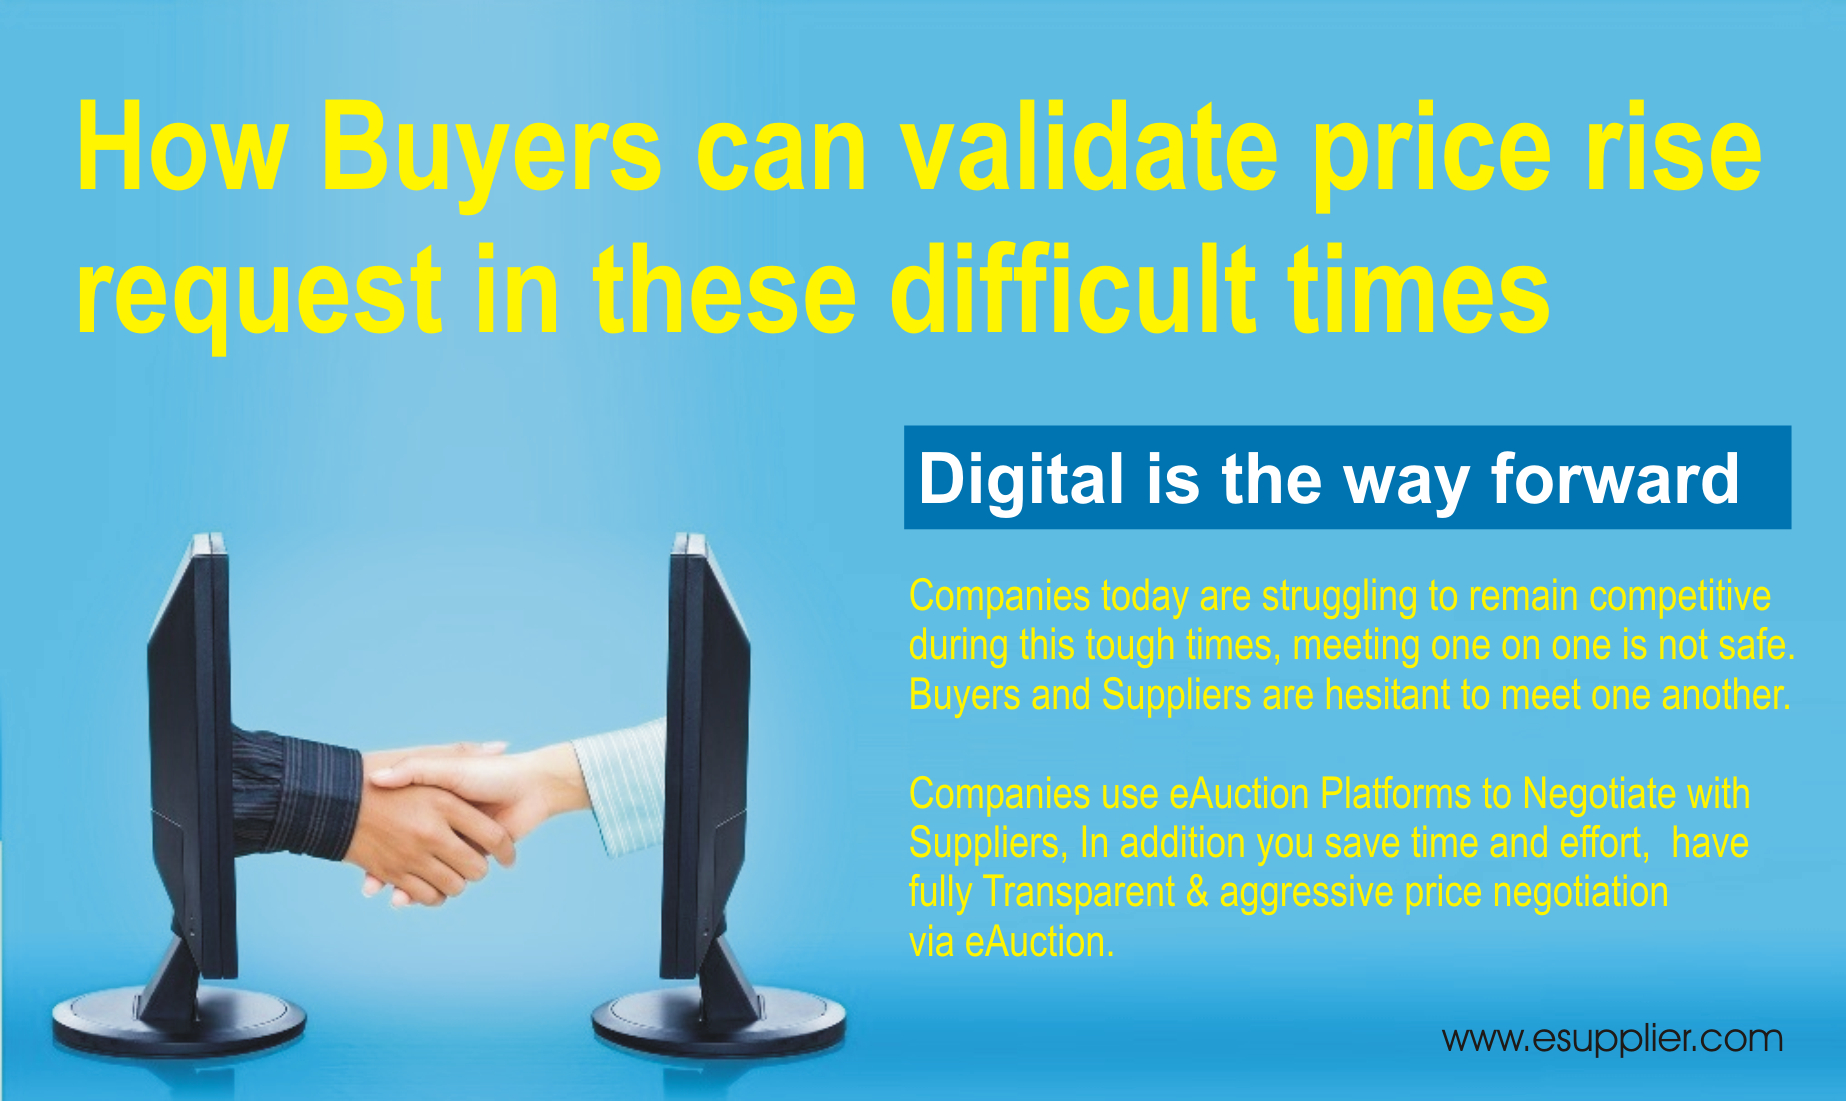 How Buyers can validate price rise in these difficult times